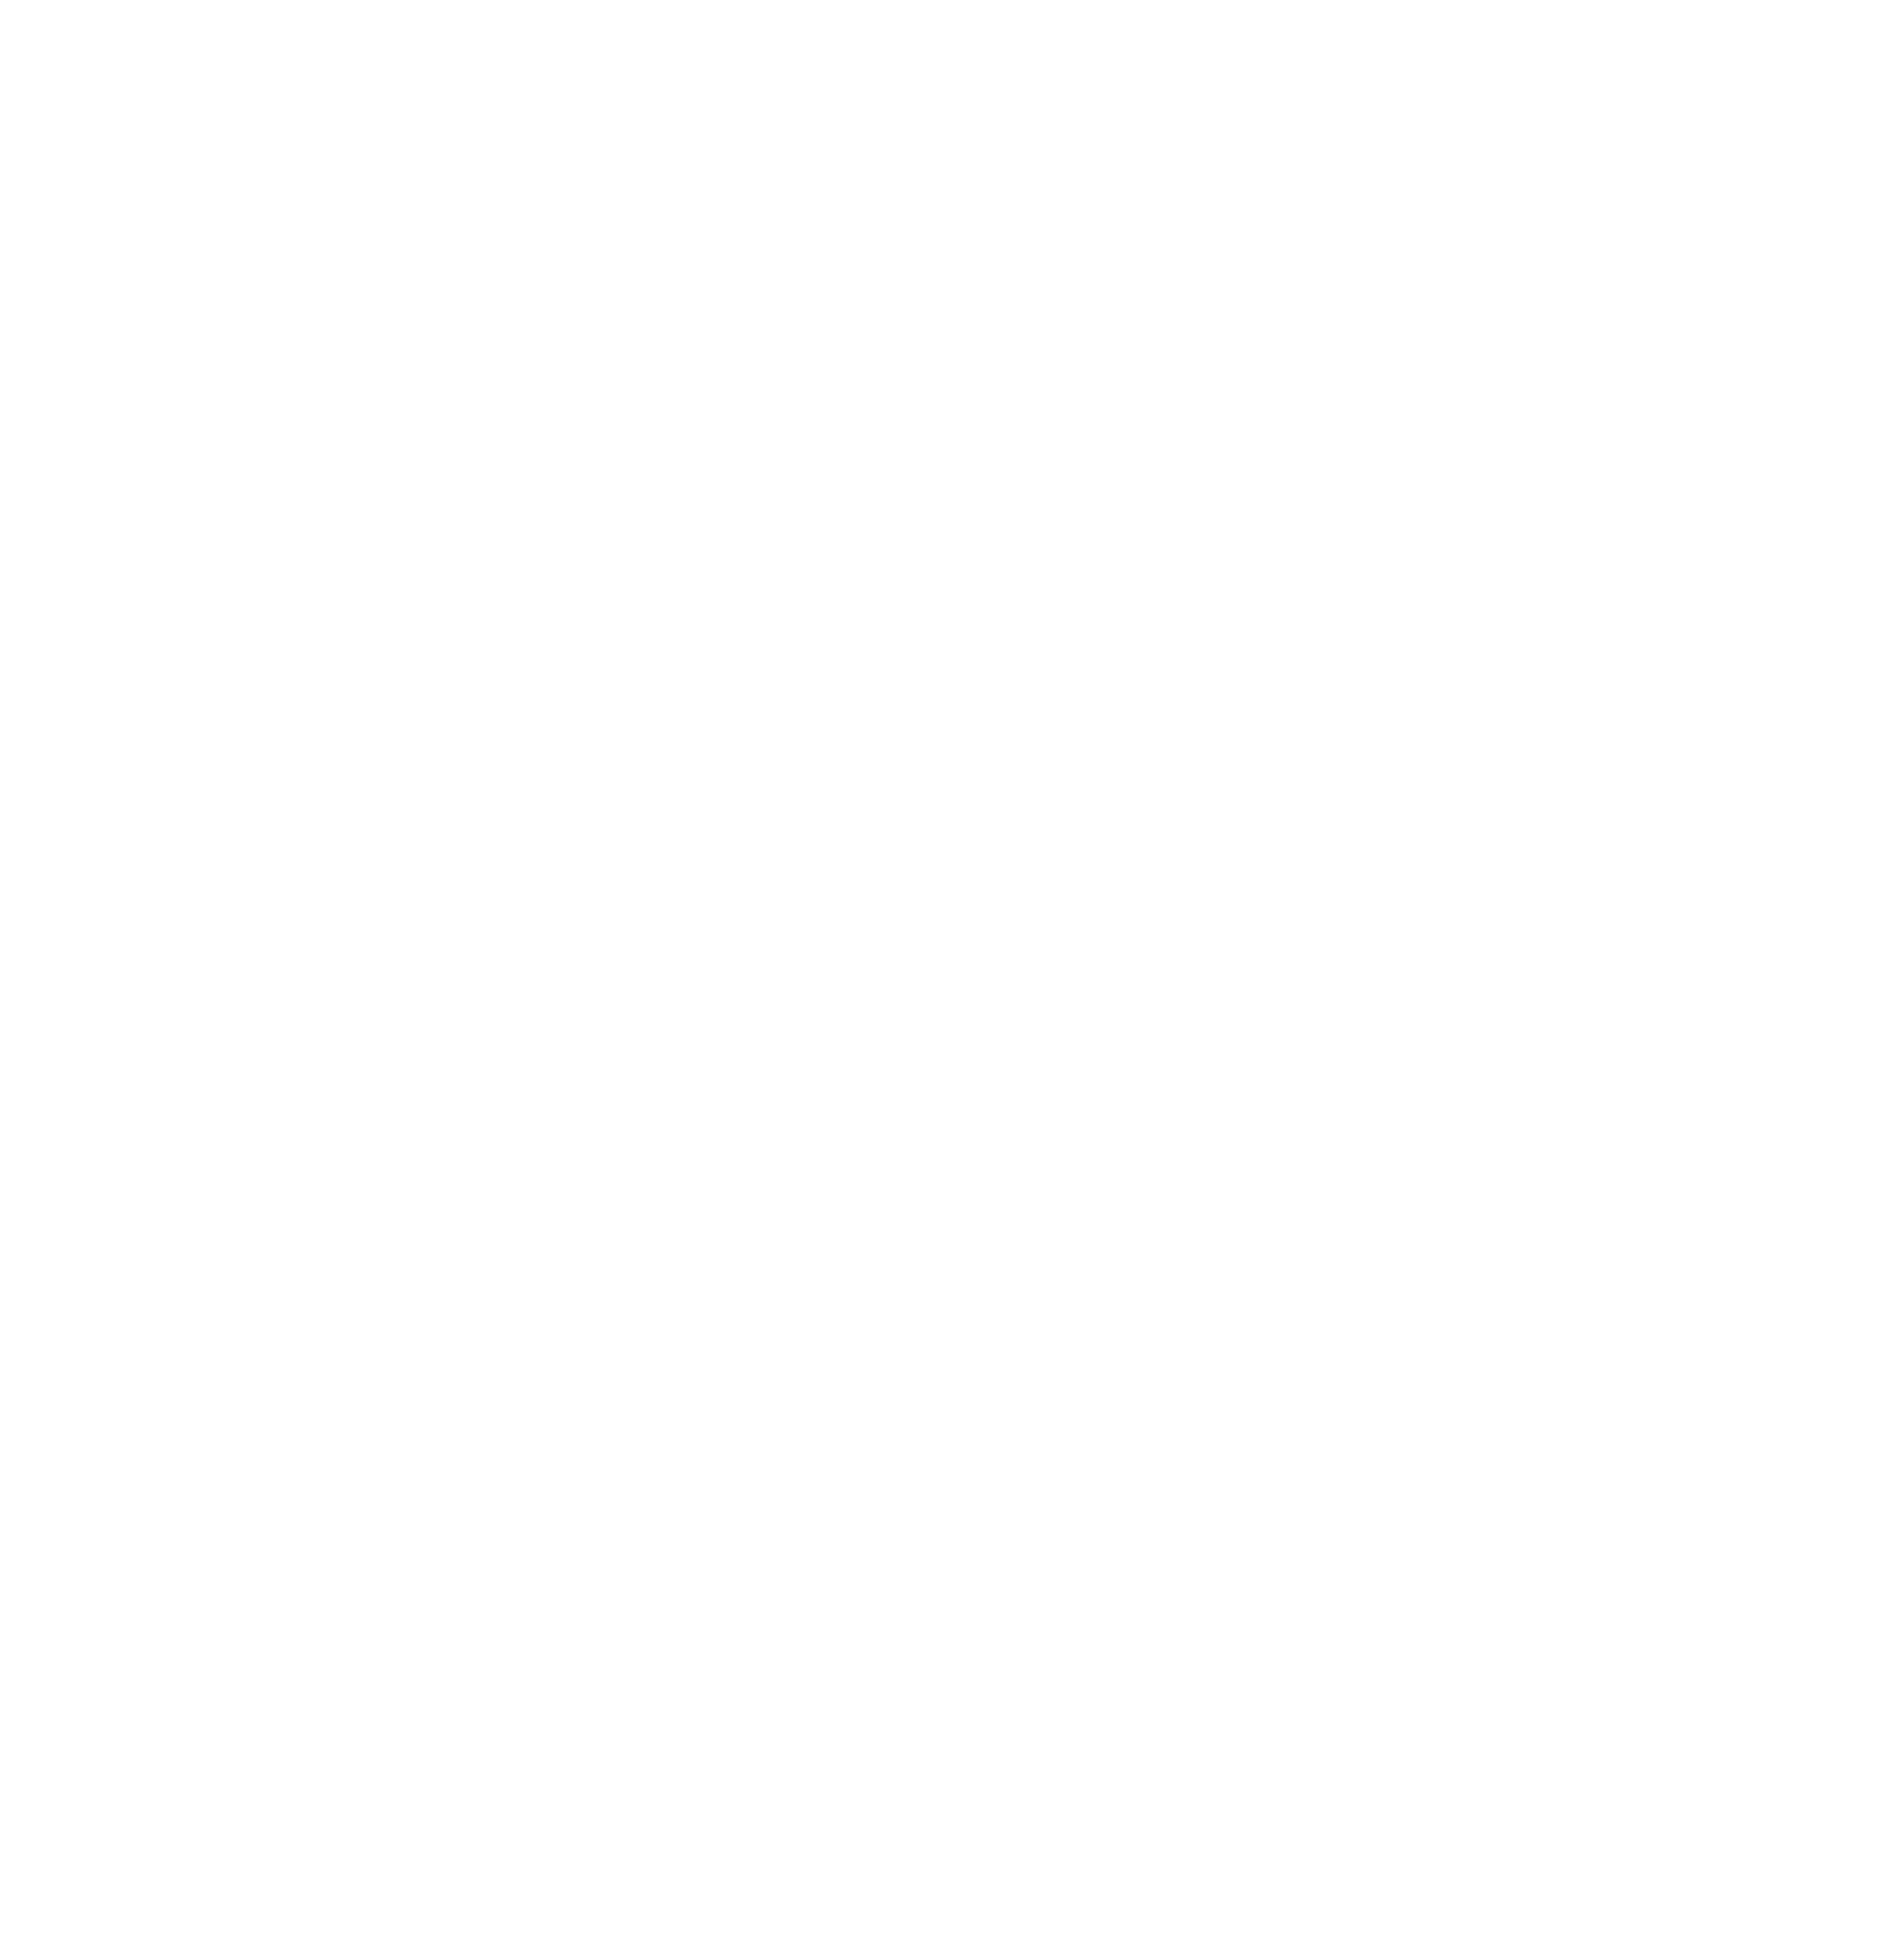 logo of The University pd Economics